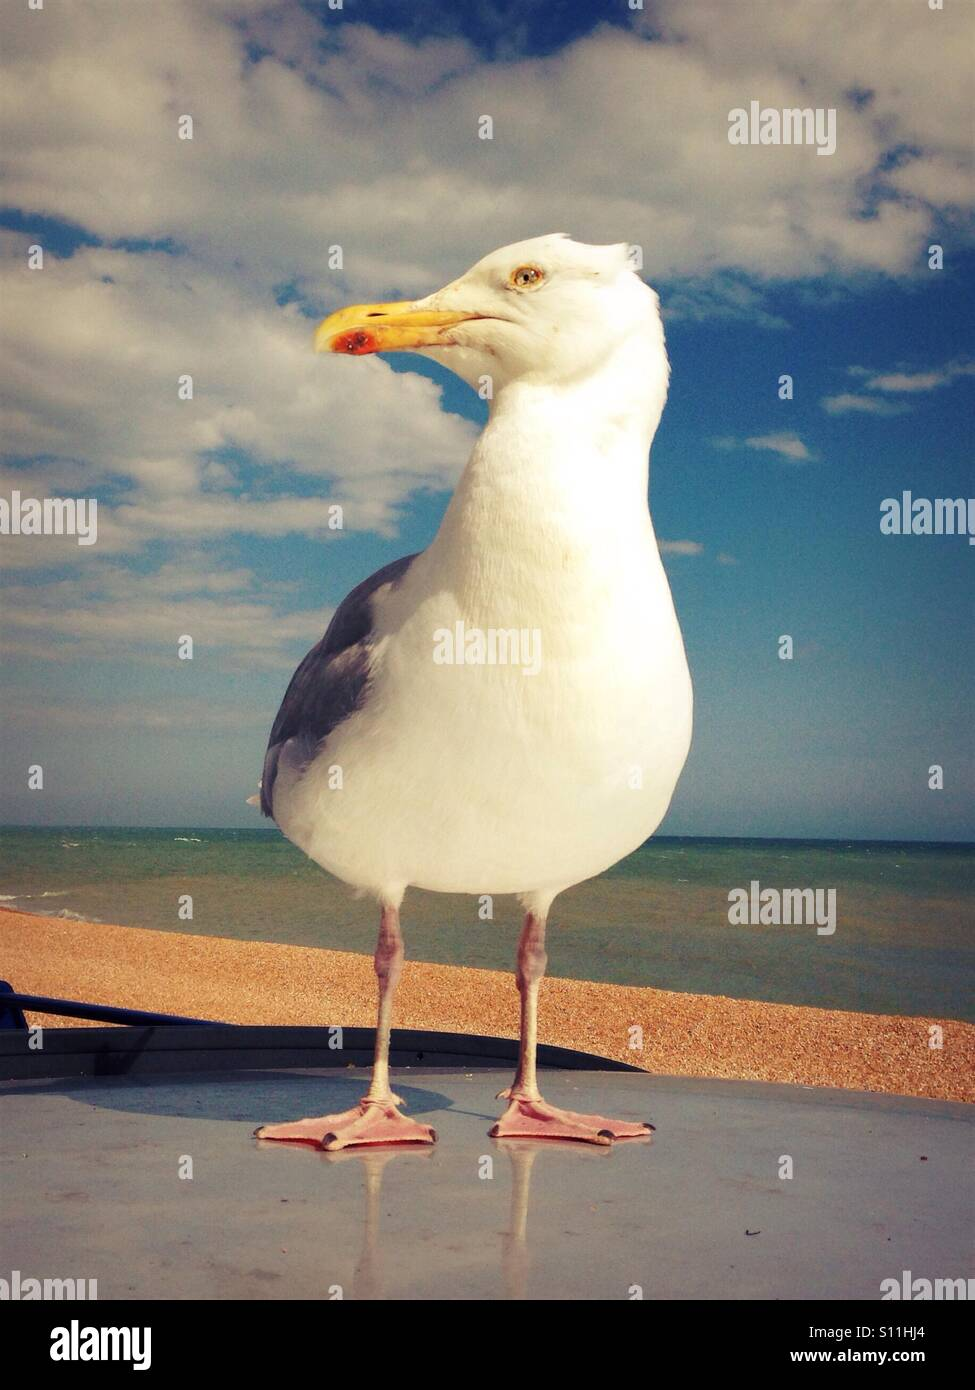 Seagull perching on top of a car parked by the beach Stock Photo